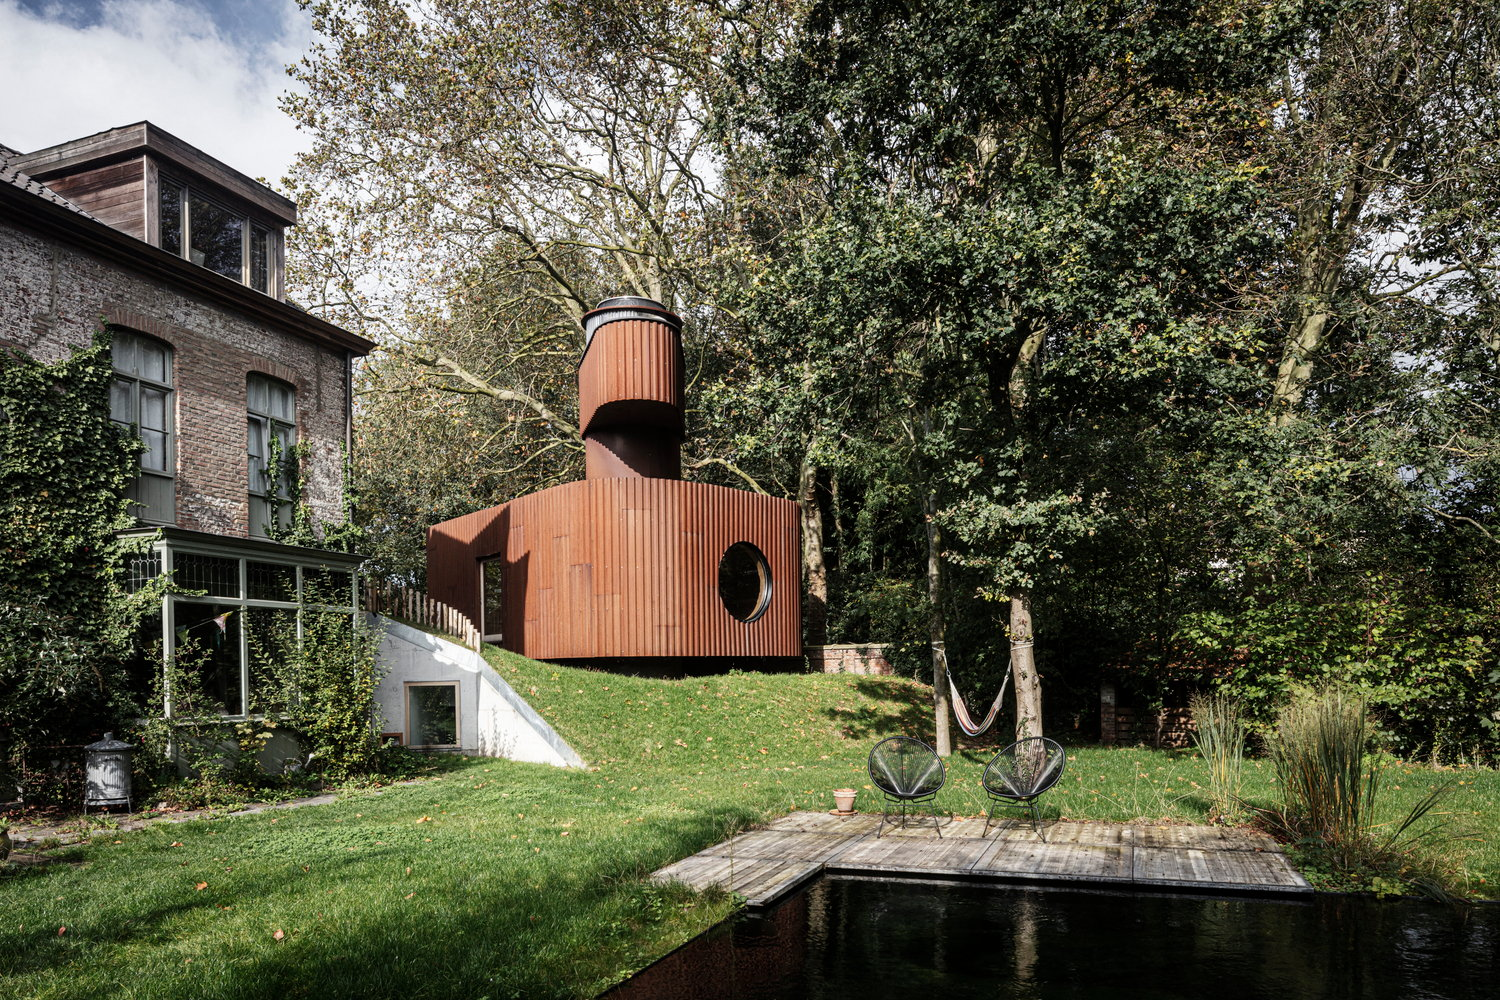 Quirky Guest House Pod in Ghent Boasts Its Own Lookout Tower